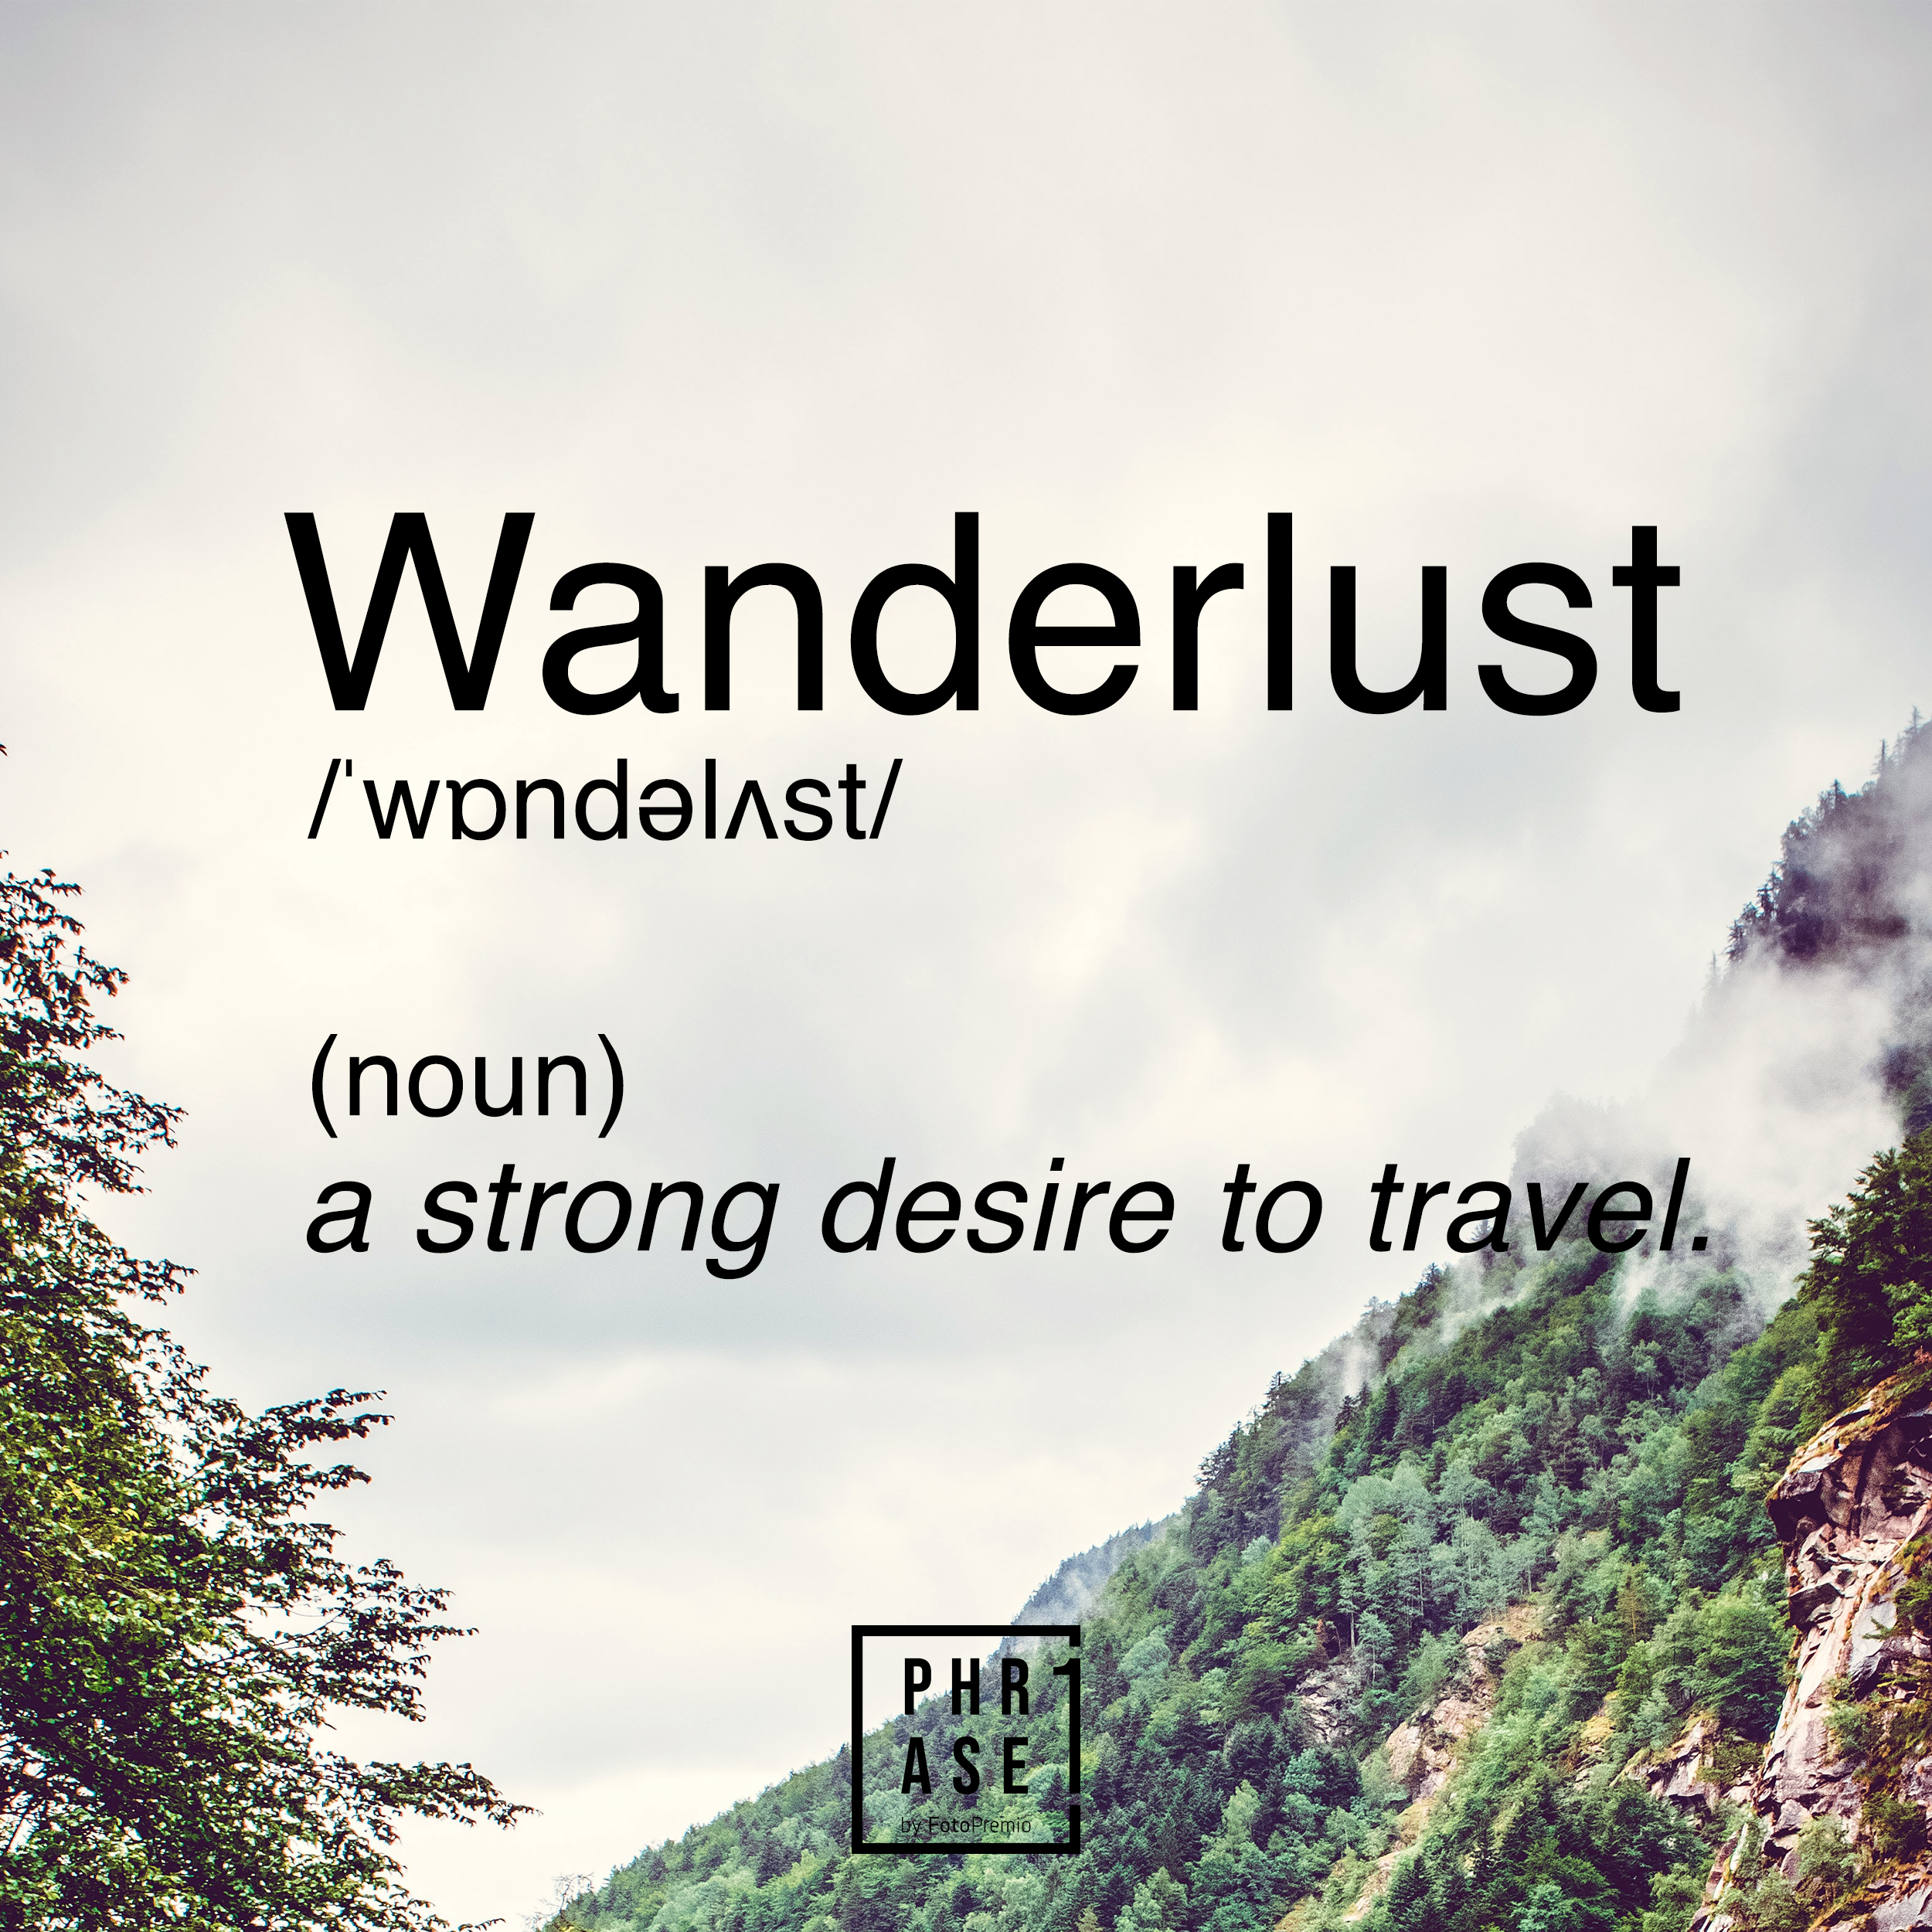 Wanderlust - a strong desire to travel